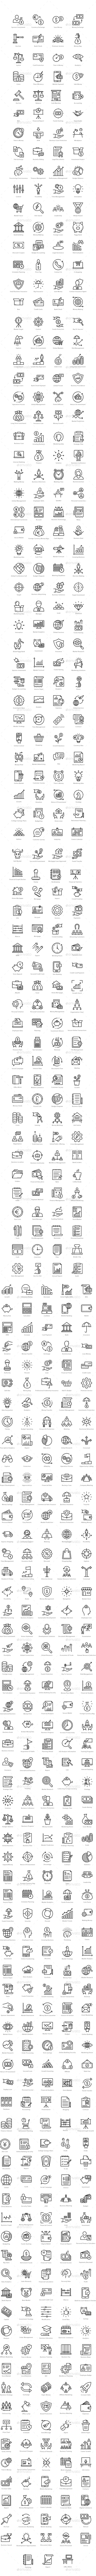 GraphicRiver 606 Finance Line Icons 20769277